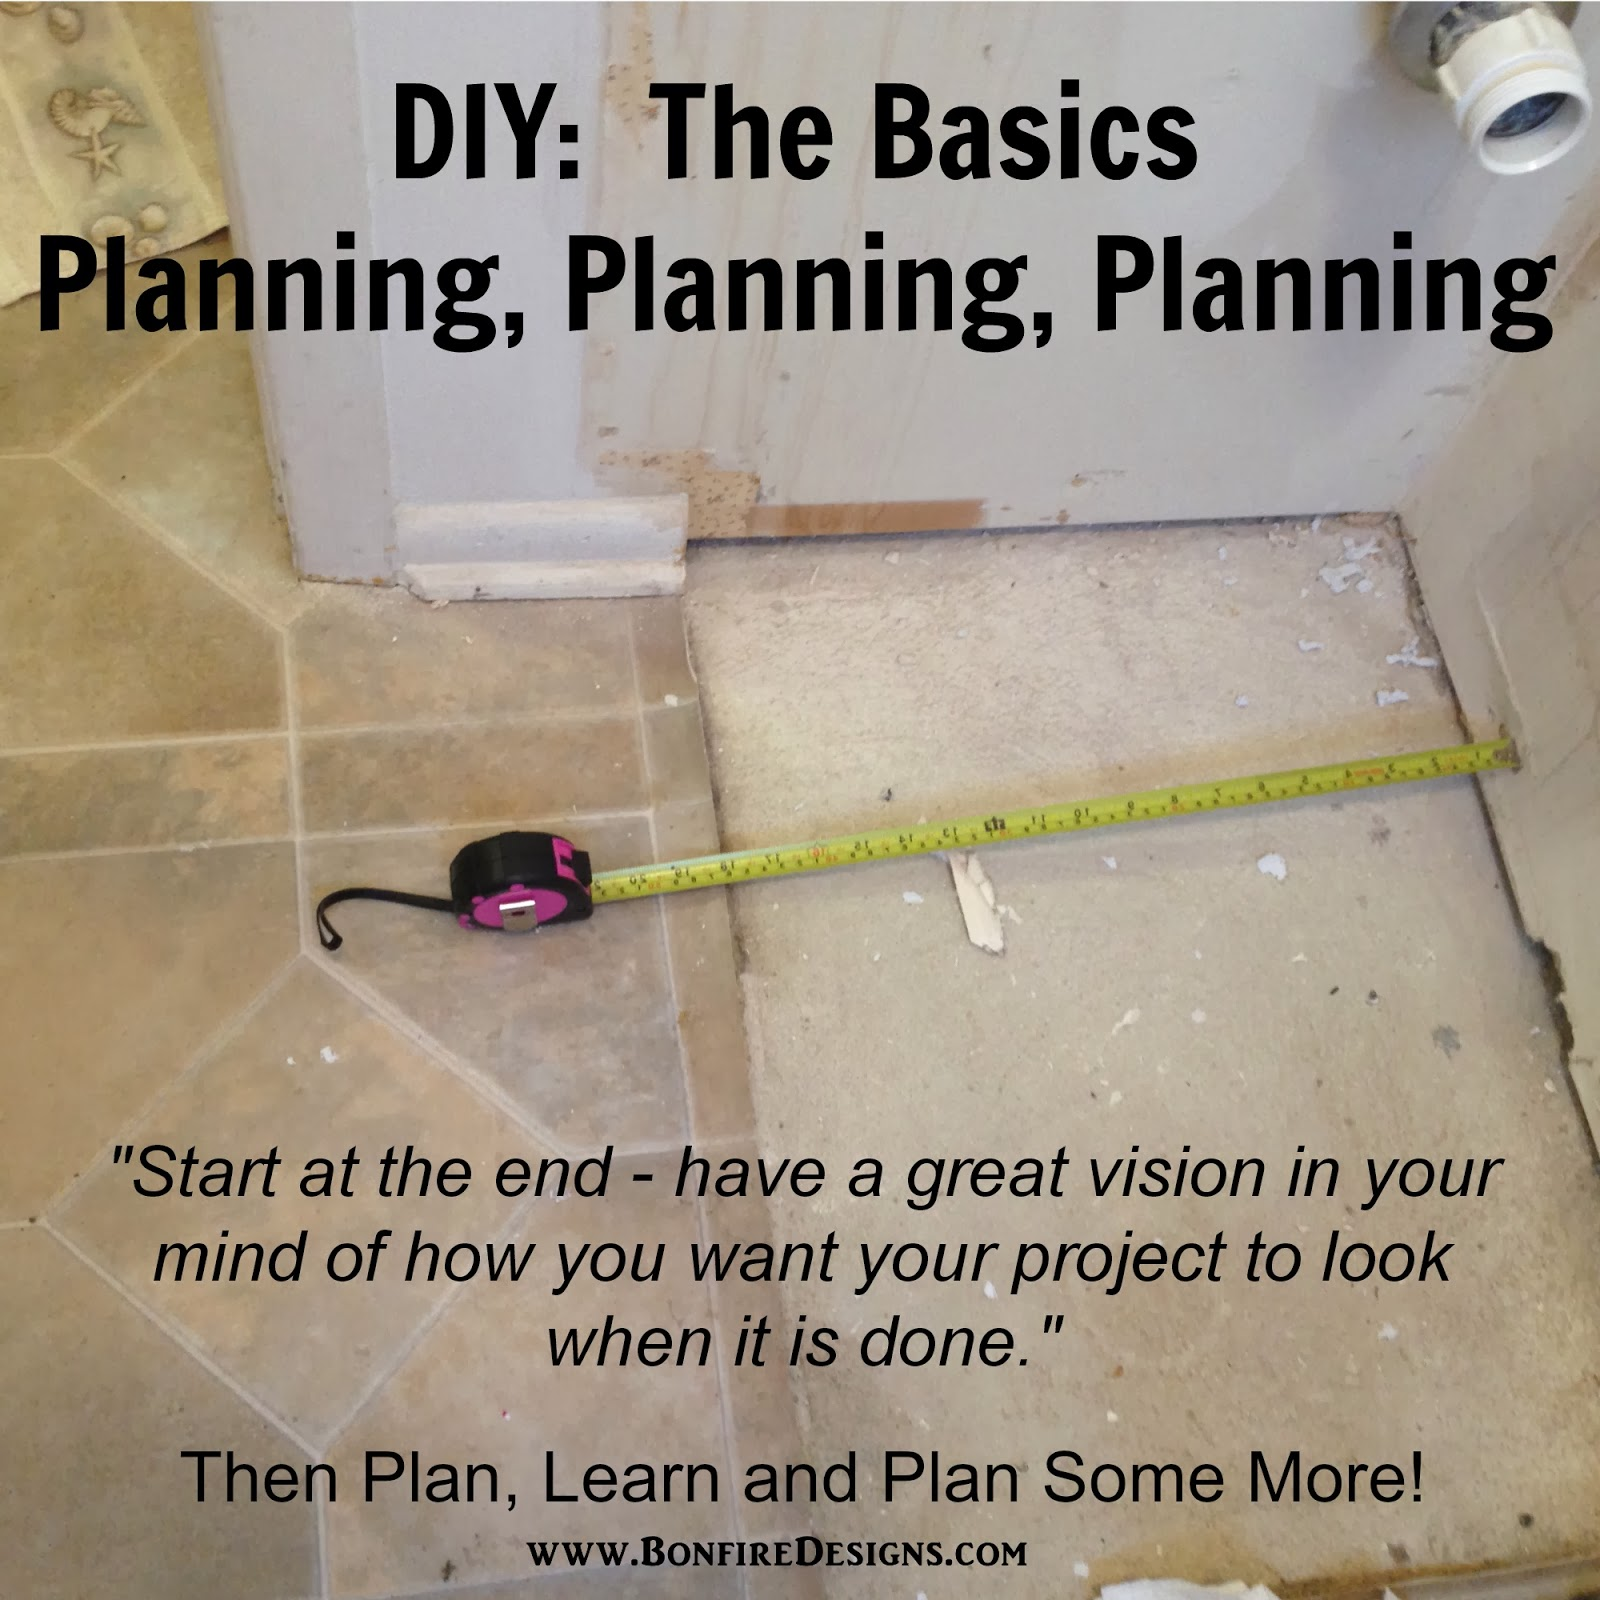 DIY Basics Have A Great Plan